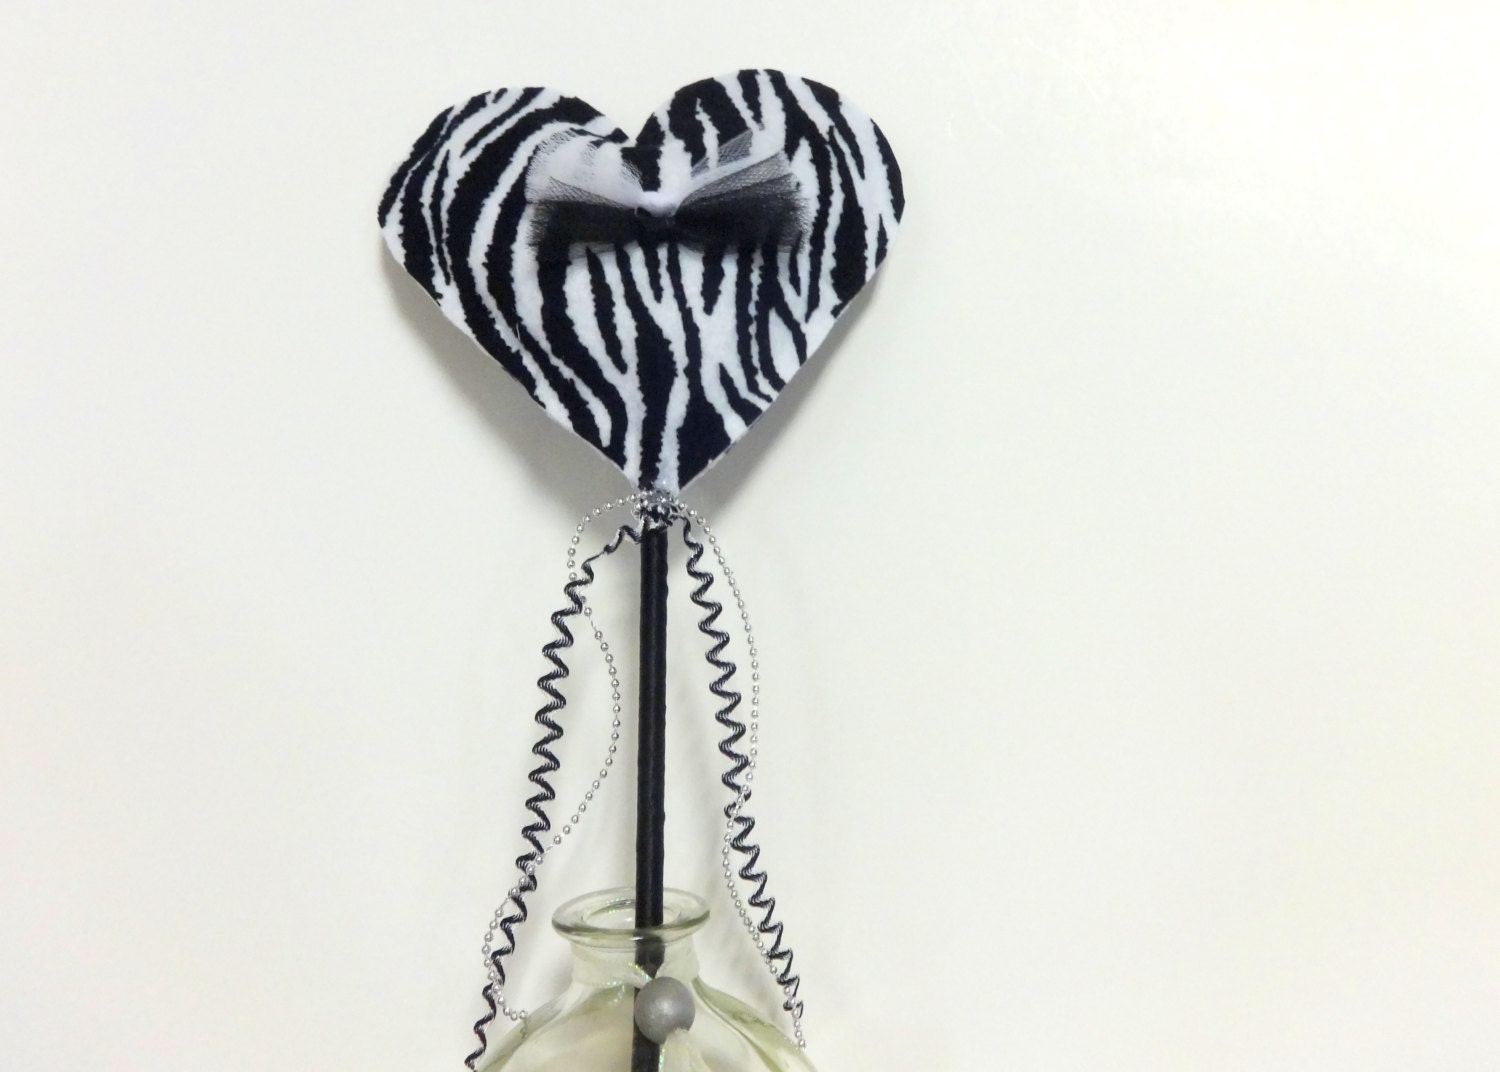 Zebra heart wand zebra print wand zebra birthday wand black for Birthday wand